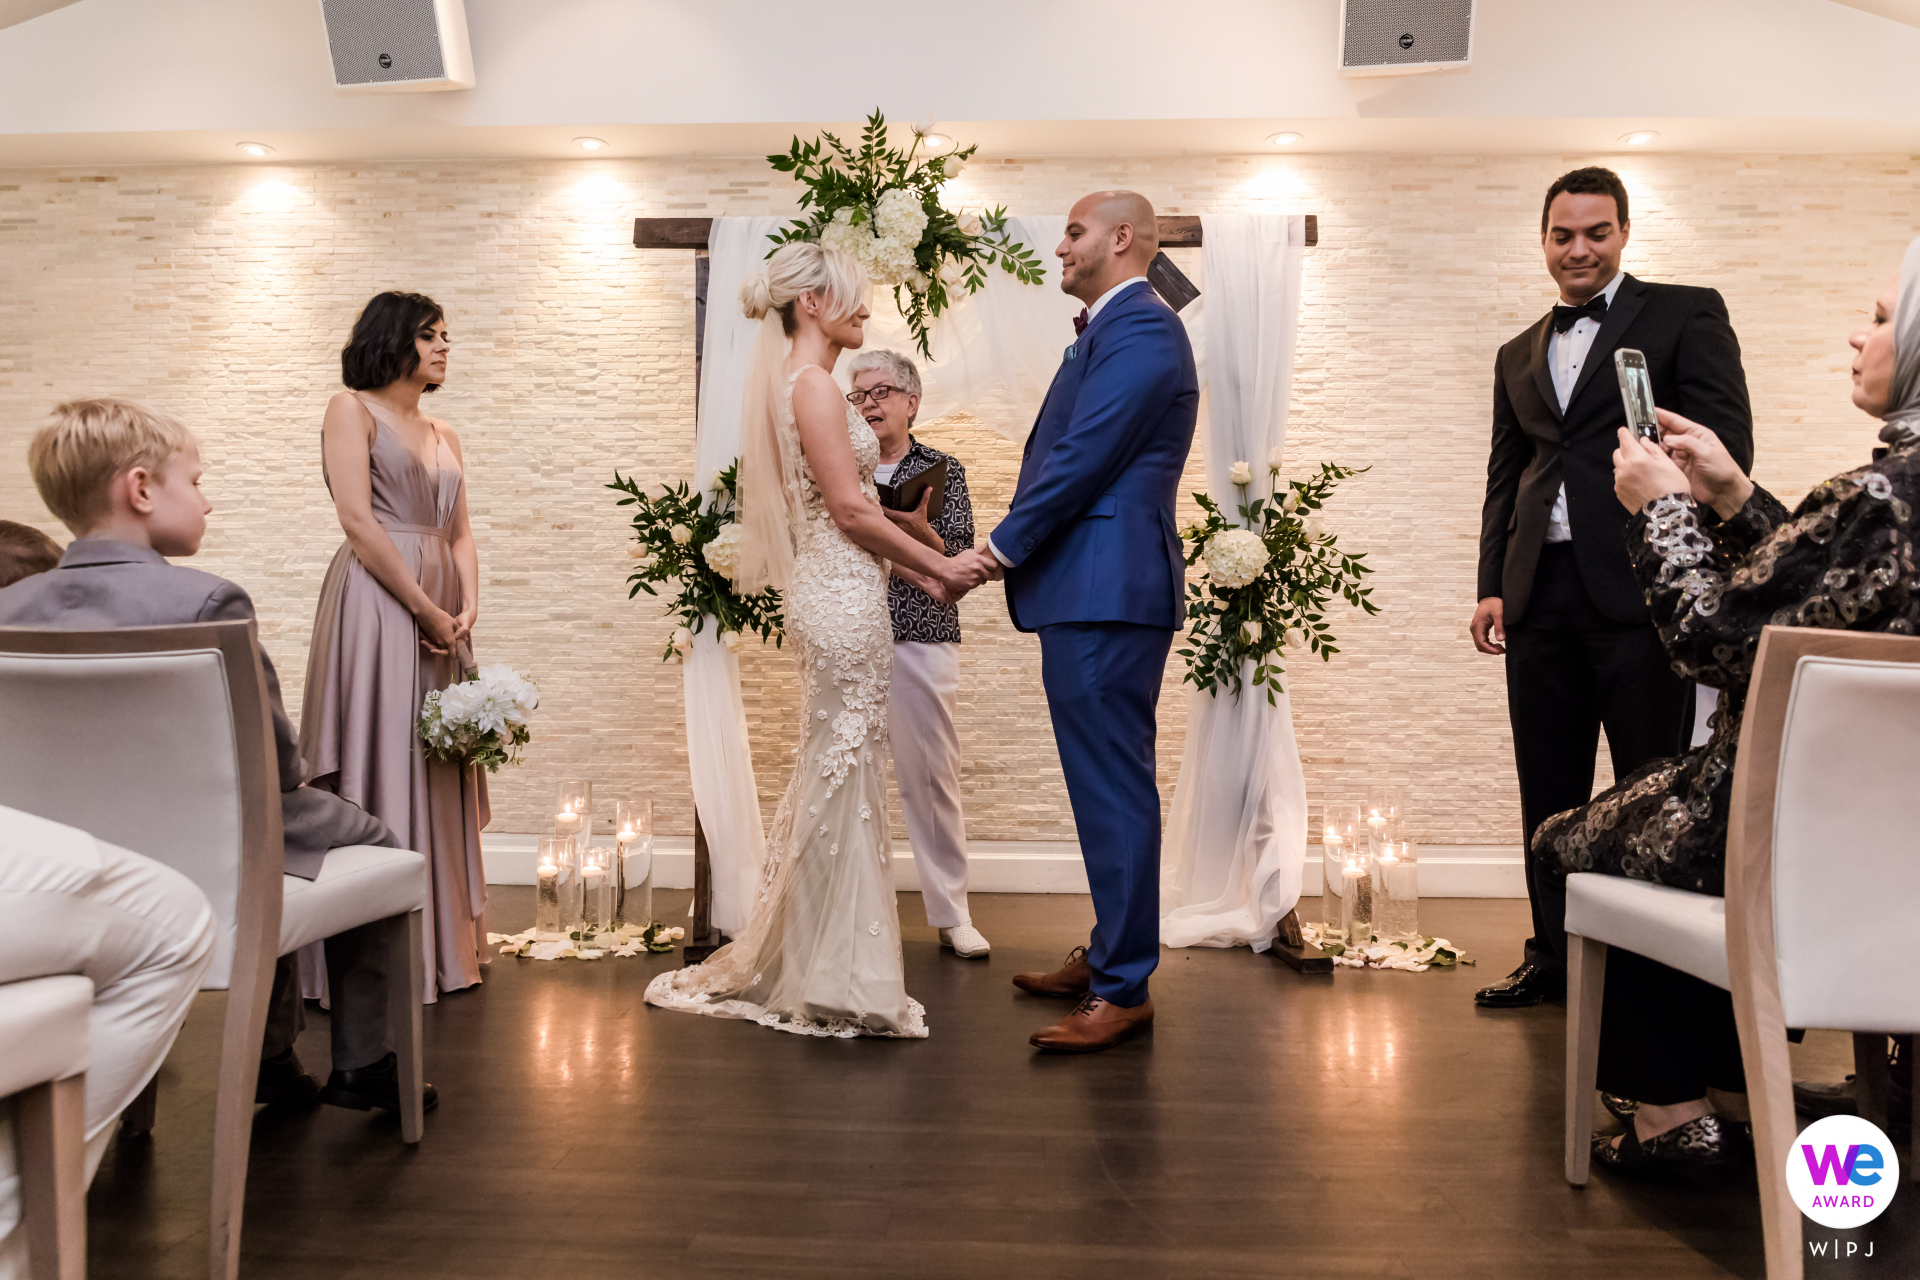 Sassafraz, Toronto, Canada Elopement Ceremony Photos | Madly in love, the couple decided to tie the knot at the iconic Sassafraz Restaurant wedding venue